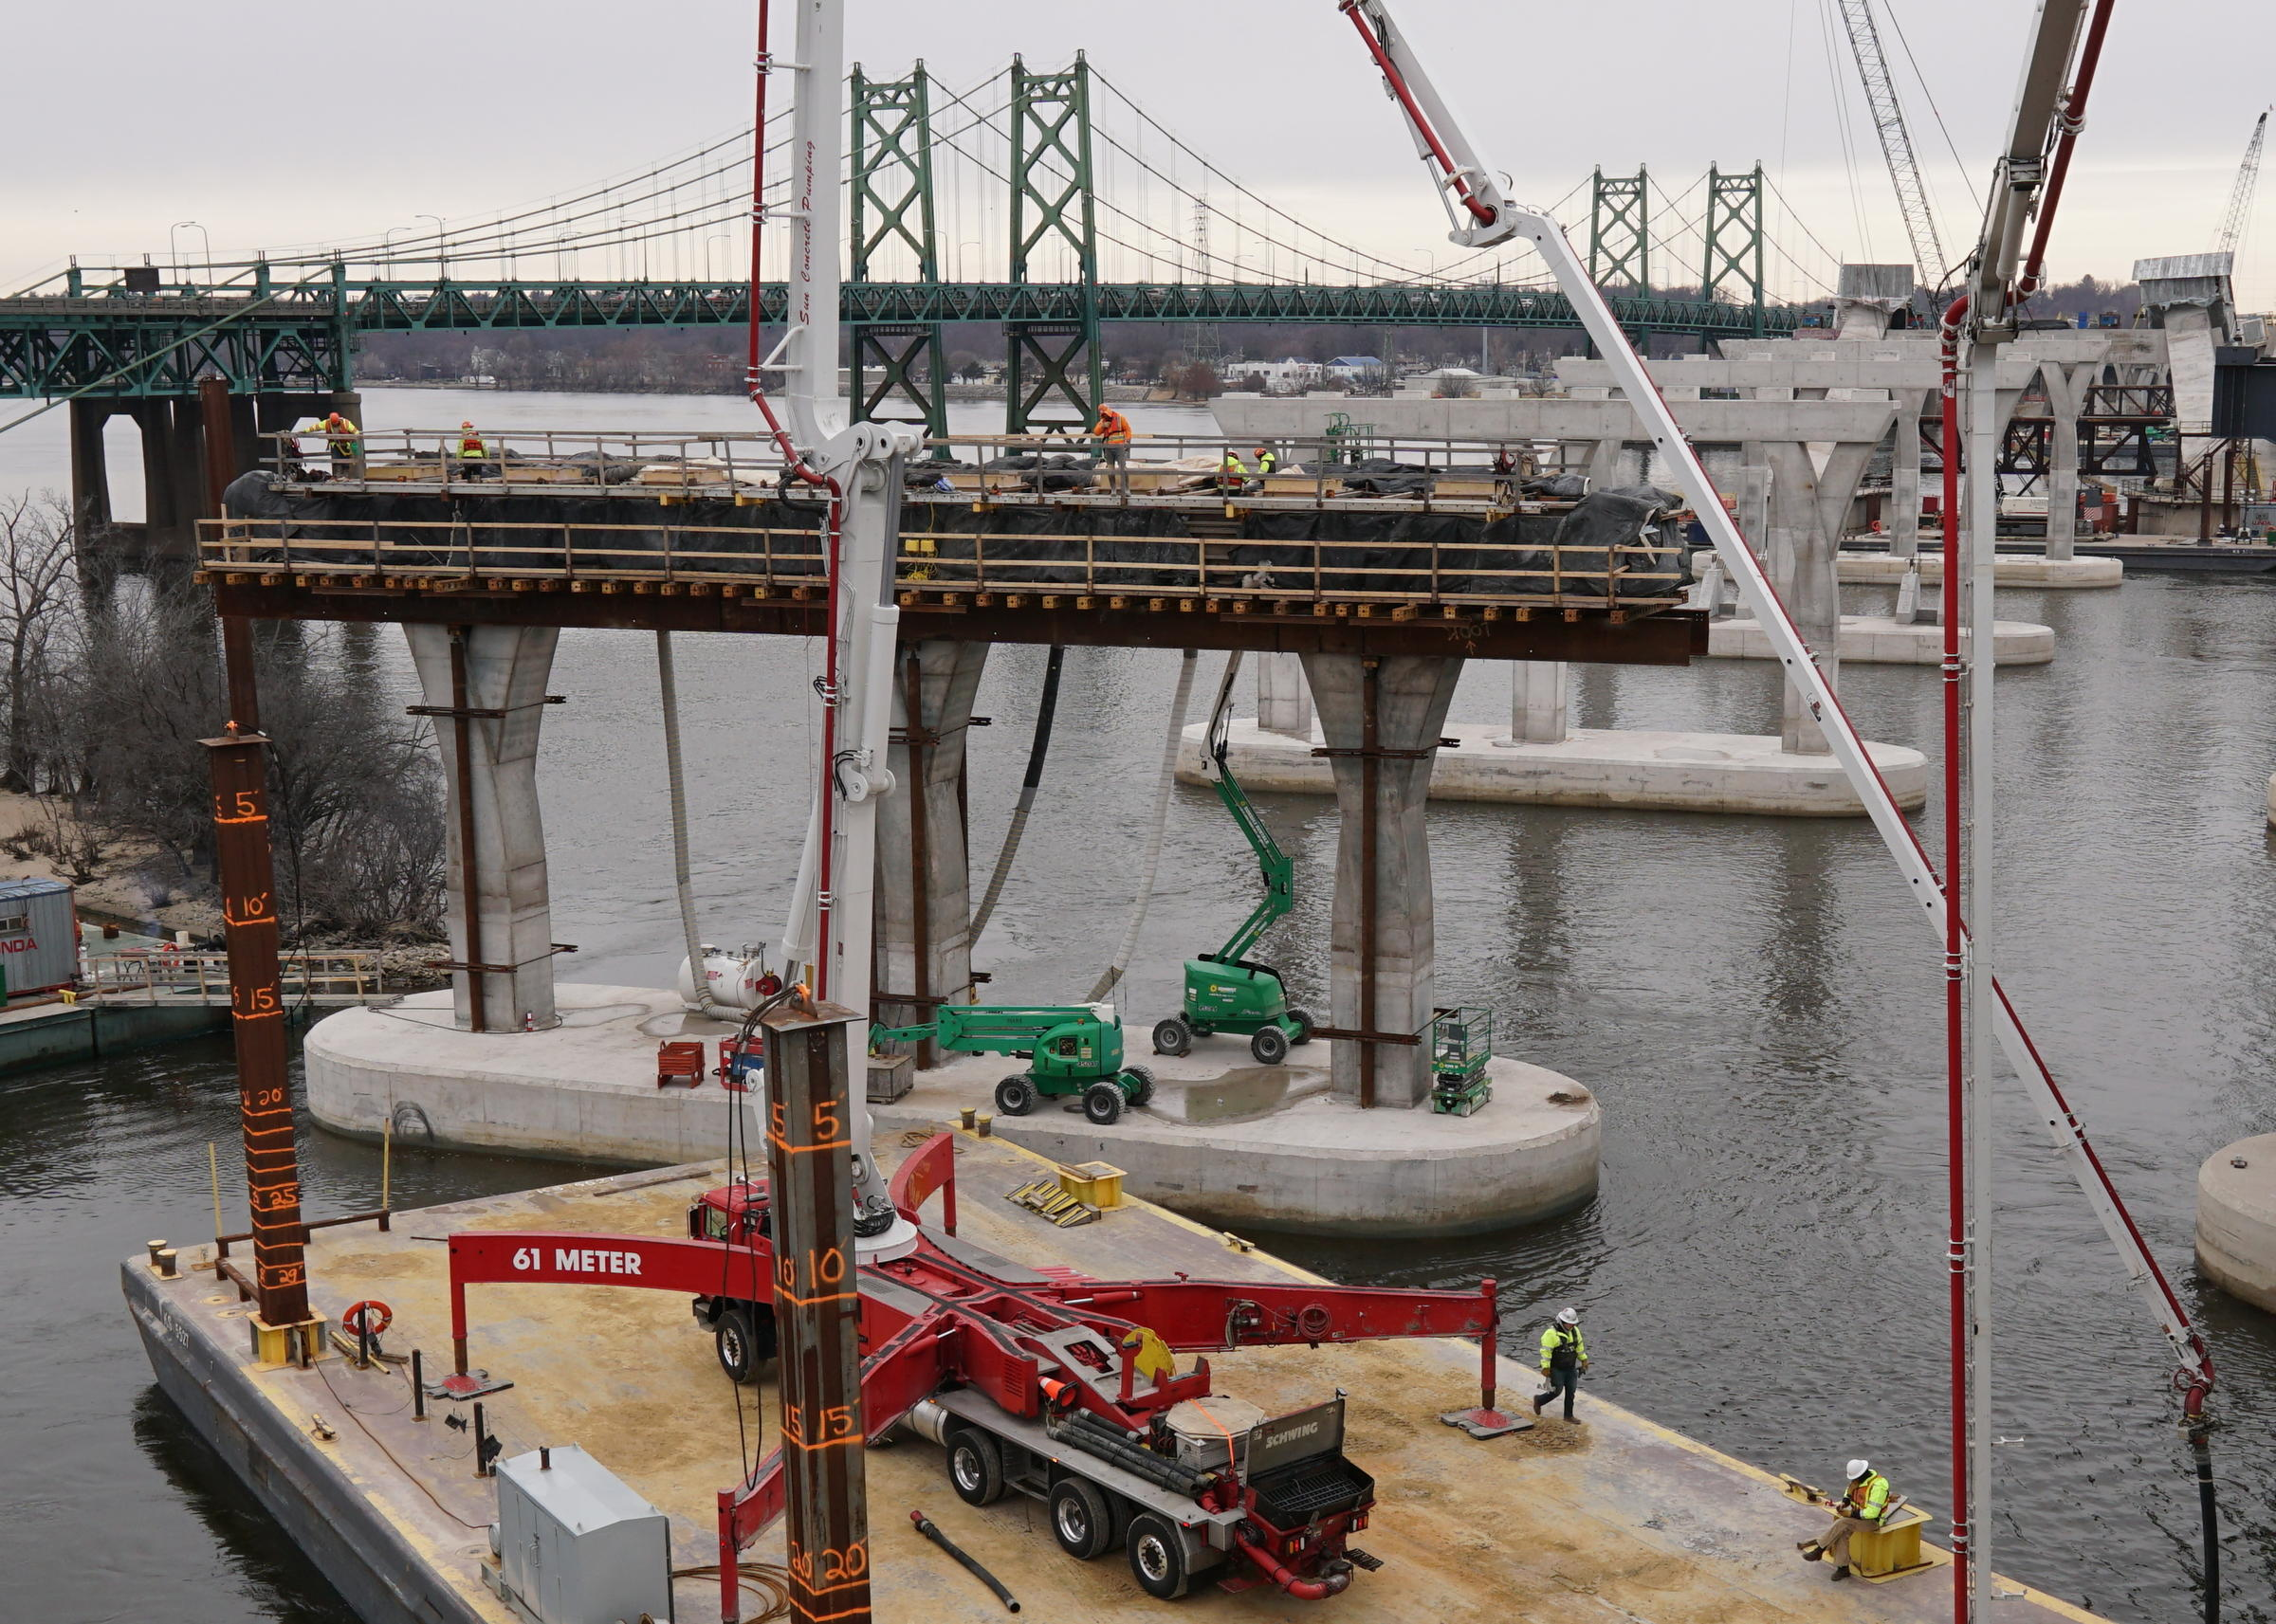 WVIK, Quad Cities NPR reports another phase of the I-74 Bridge Project has been completed. The image shows crews finishing pouring concrete for all the piers located in the river.